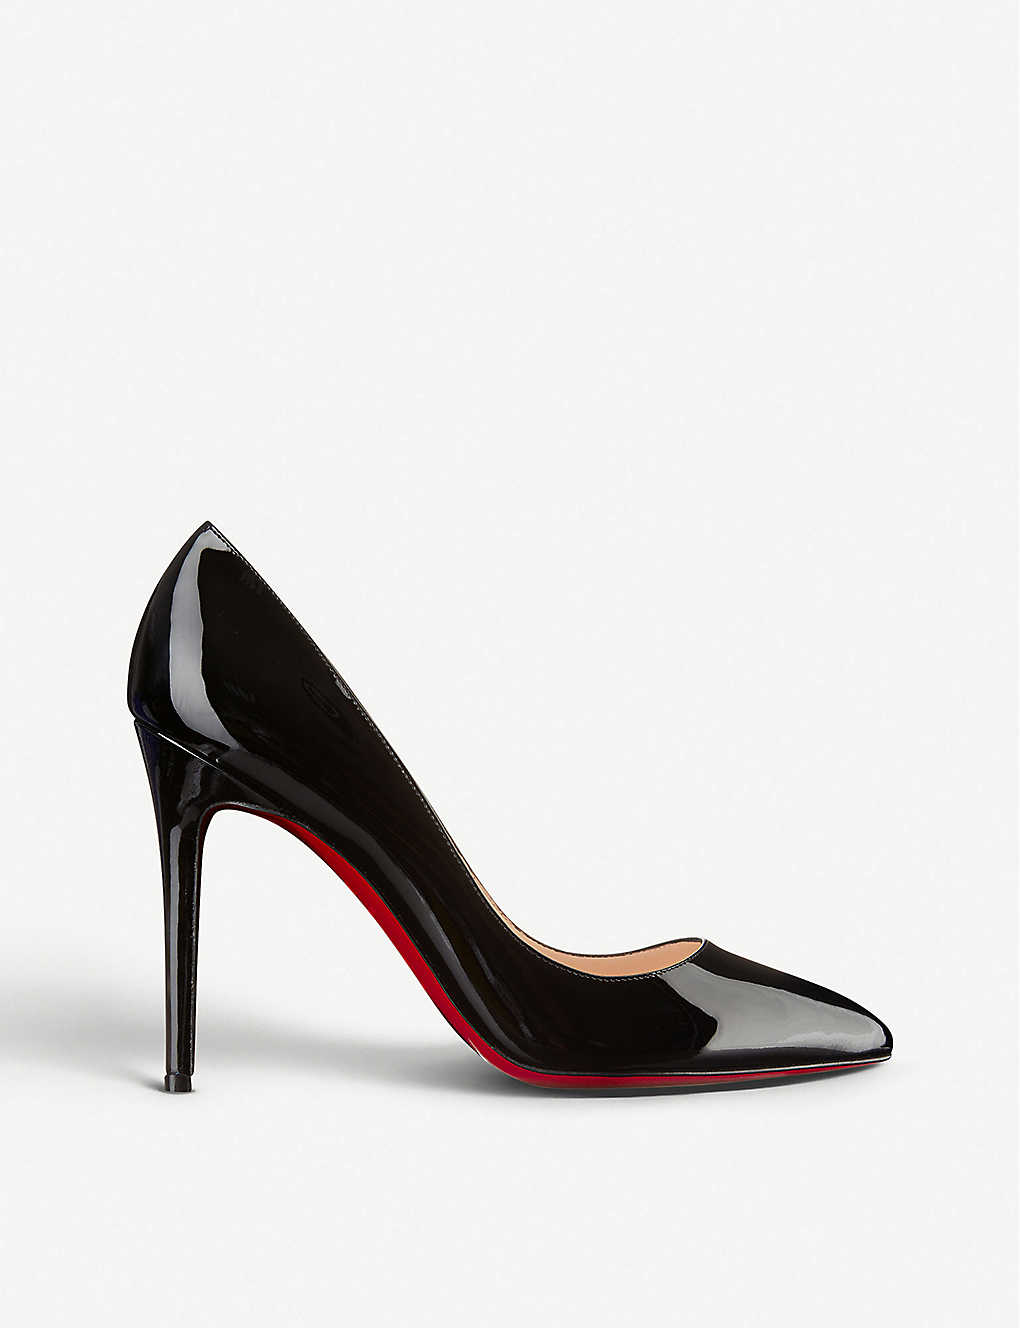 Christian Louboutin Patent Leather Platform Slingback Pumps